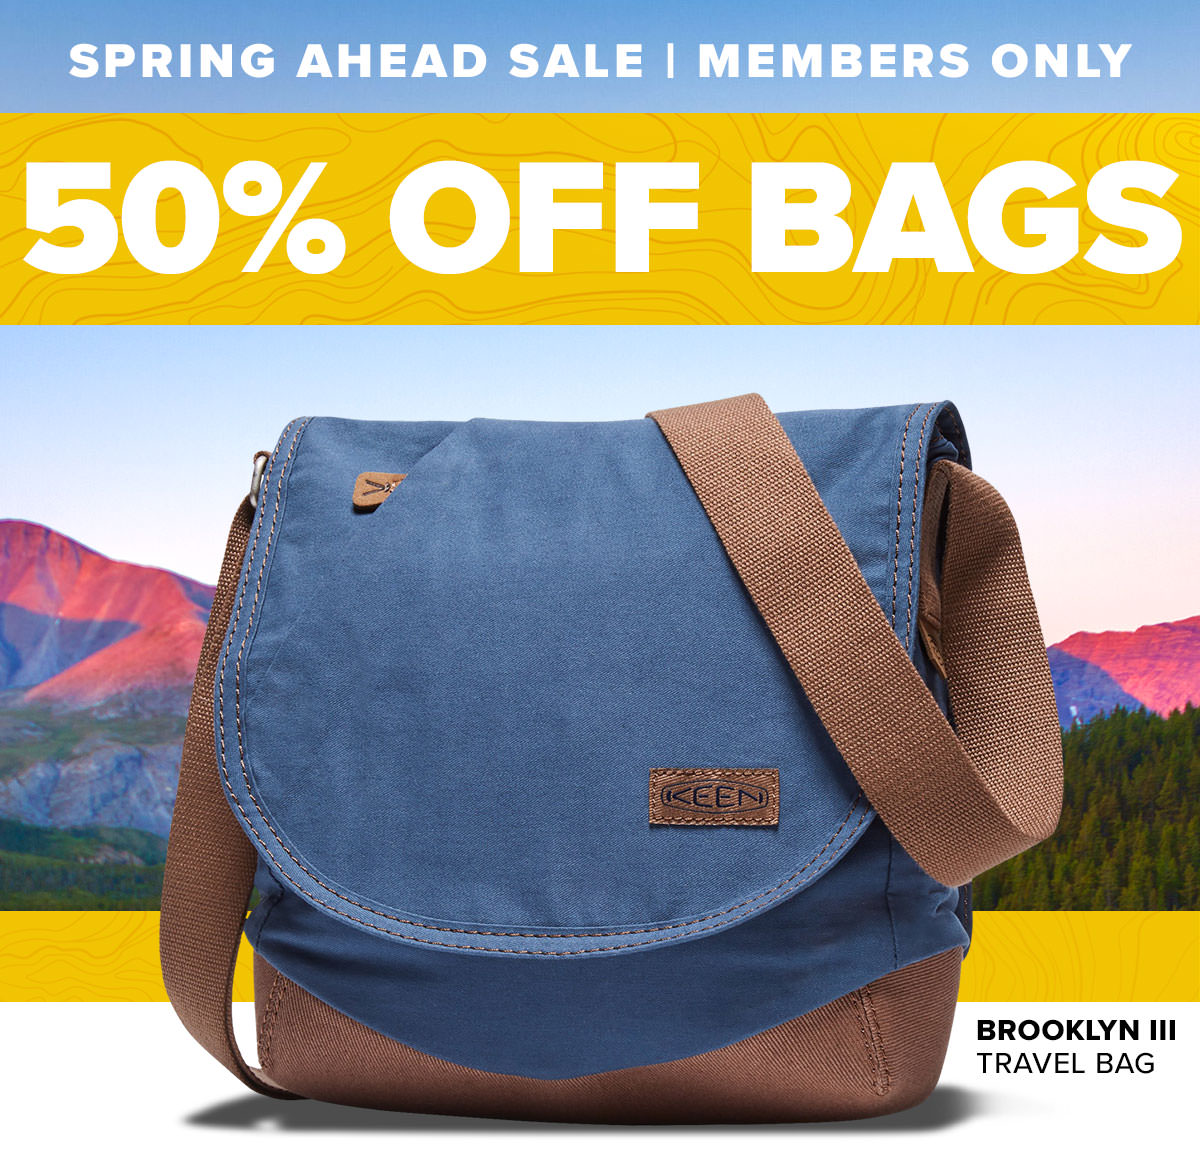 Shop the Members Only Sale